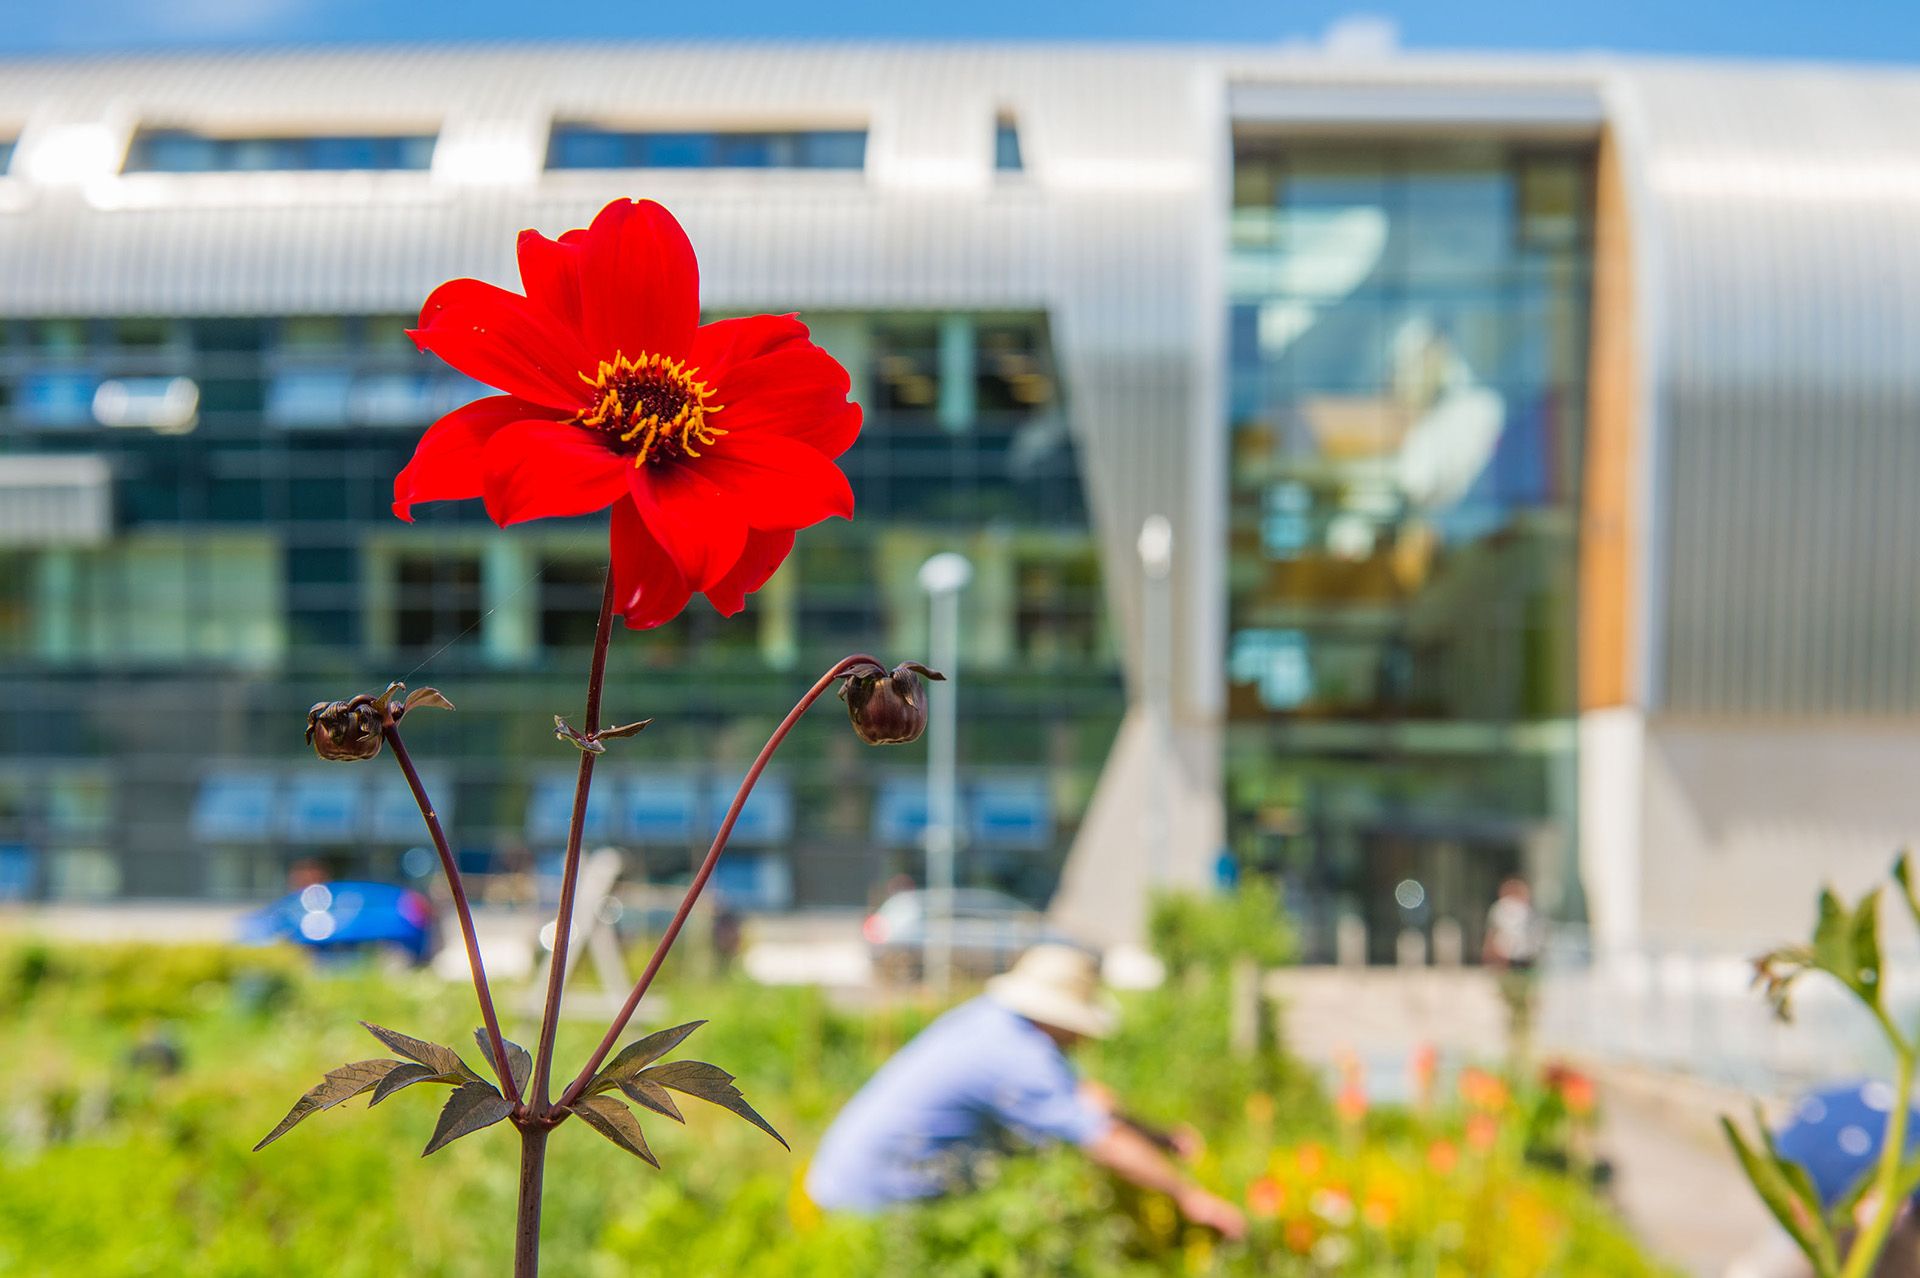 Exterior photo of SBSA campus, gardening and flowers